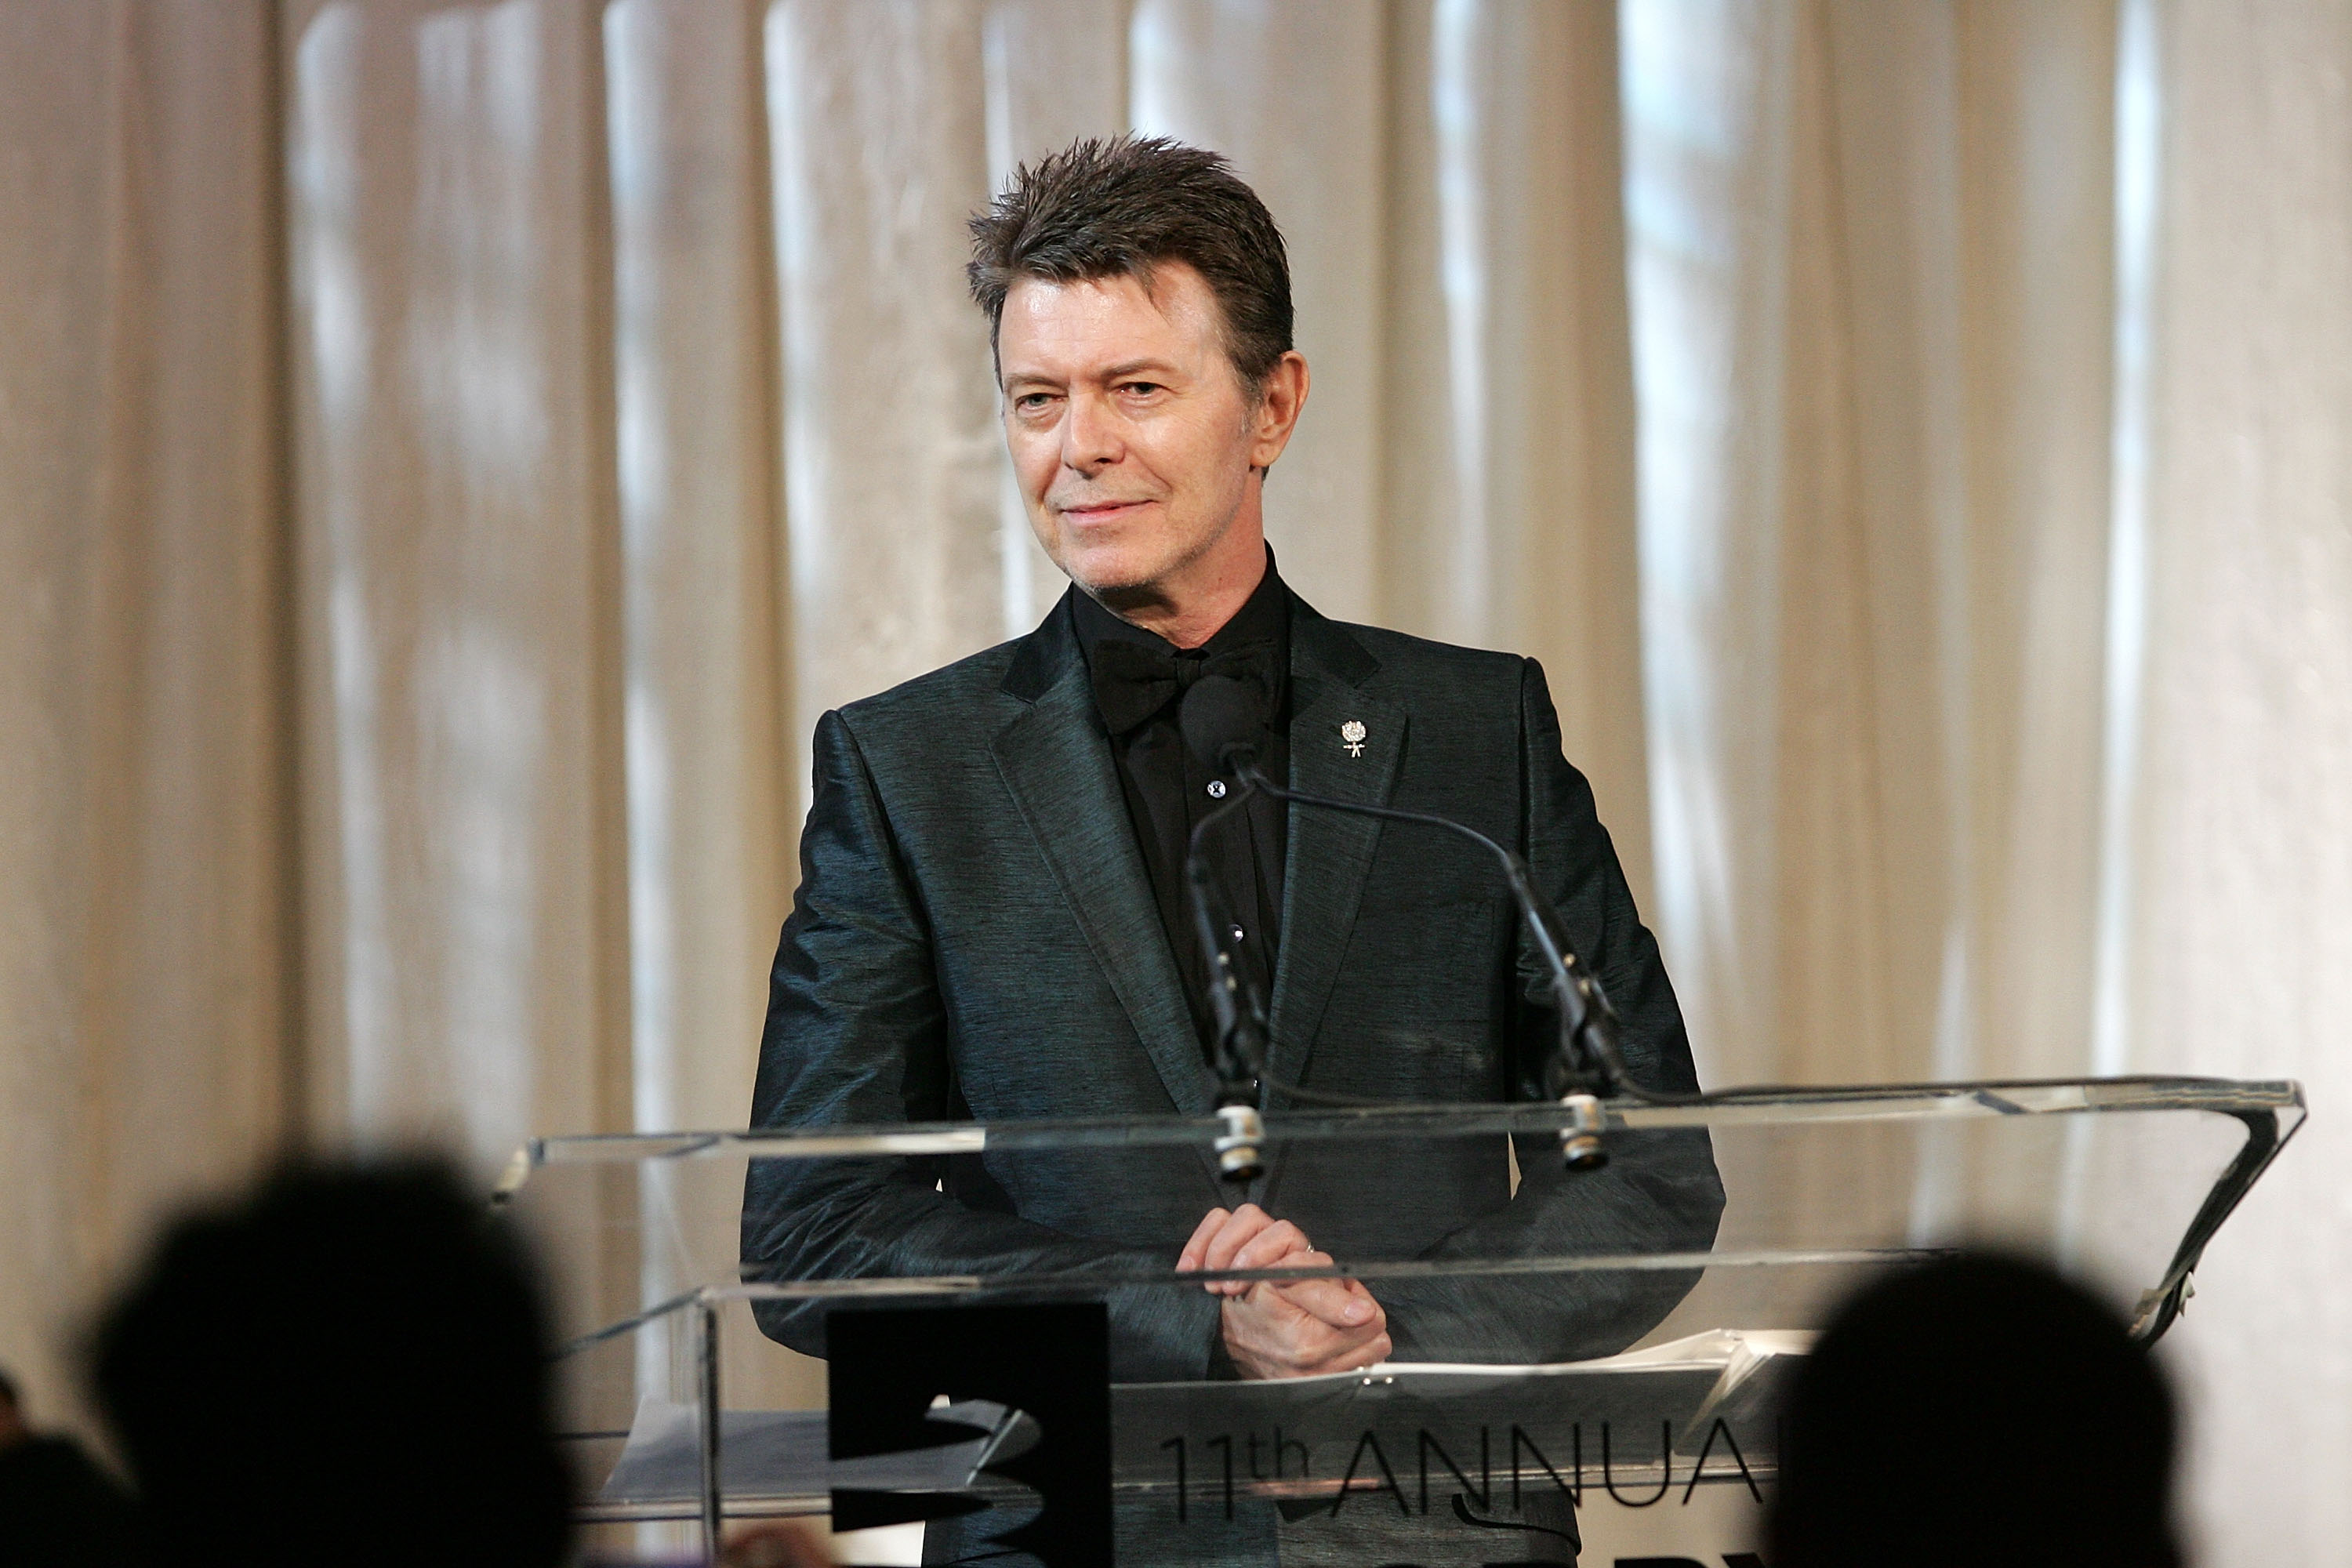 Musician David Bowie speaks onstage while accepting the Webby Lifetime Achievement award at the 11th Annual Webby Awards une 5, 2007.